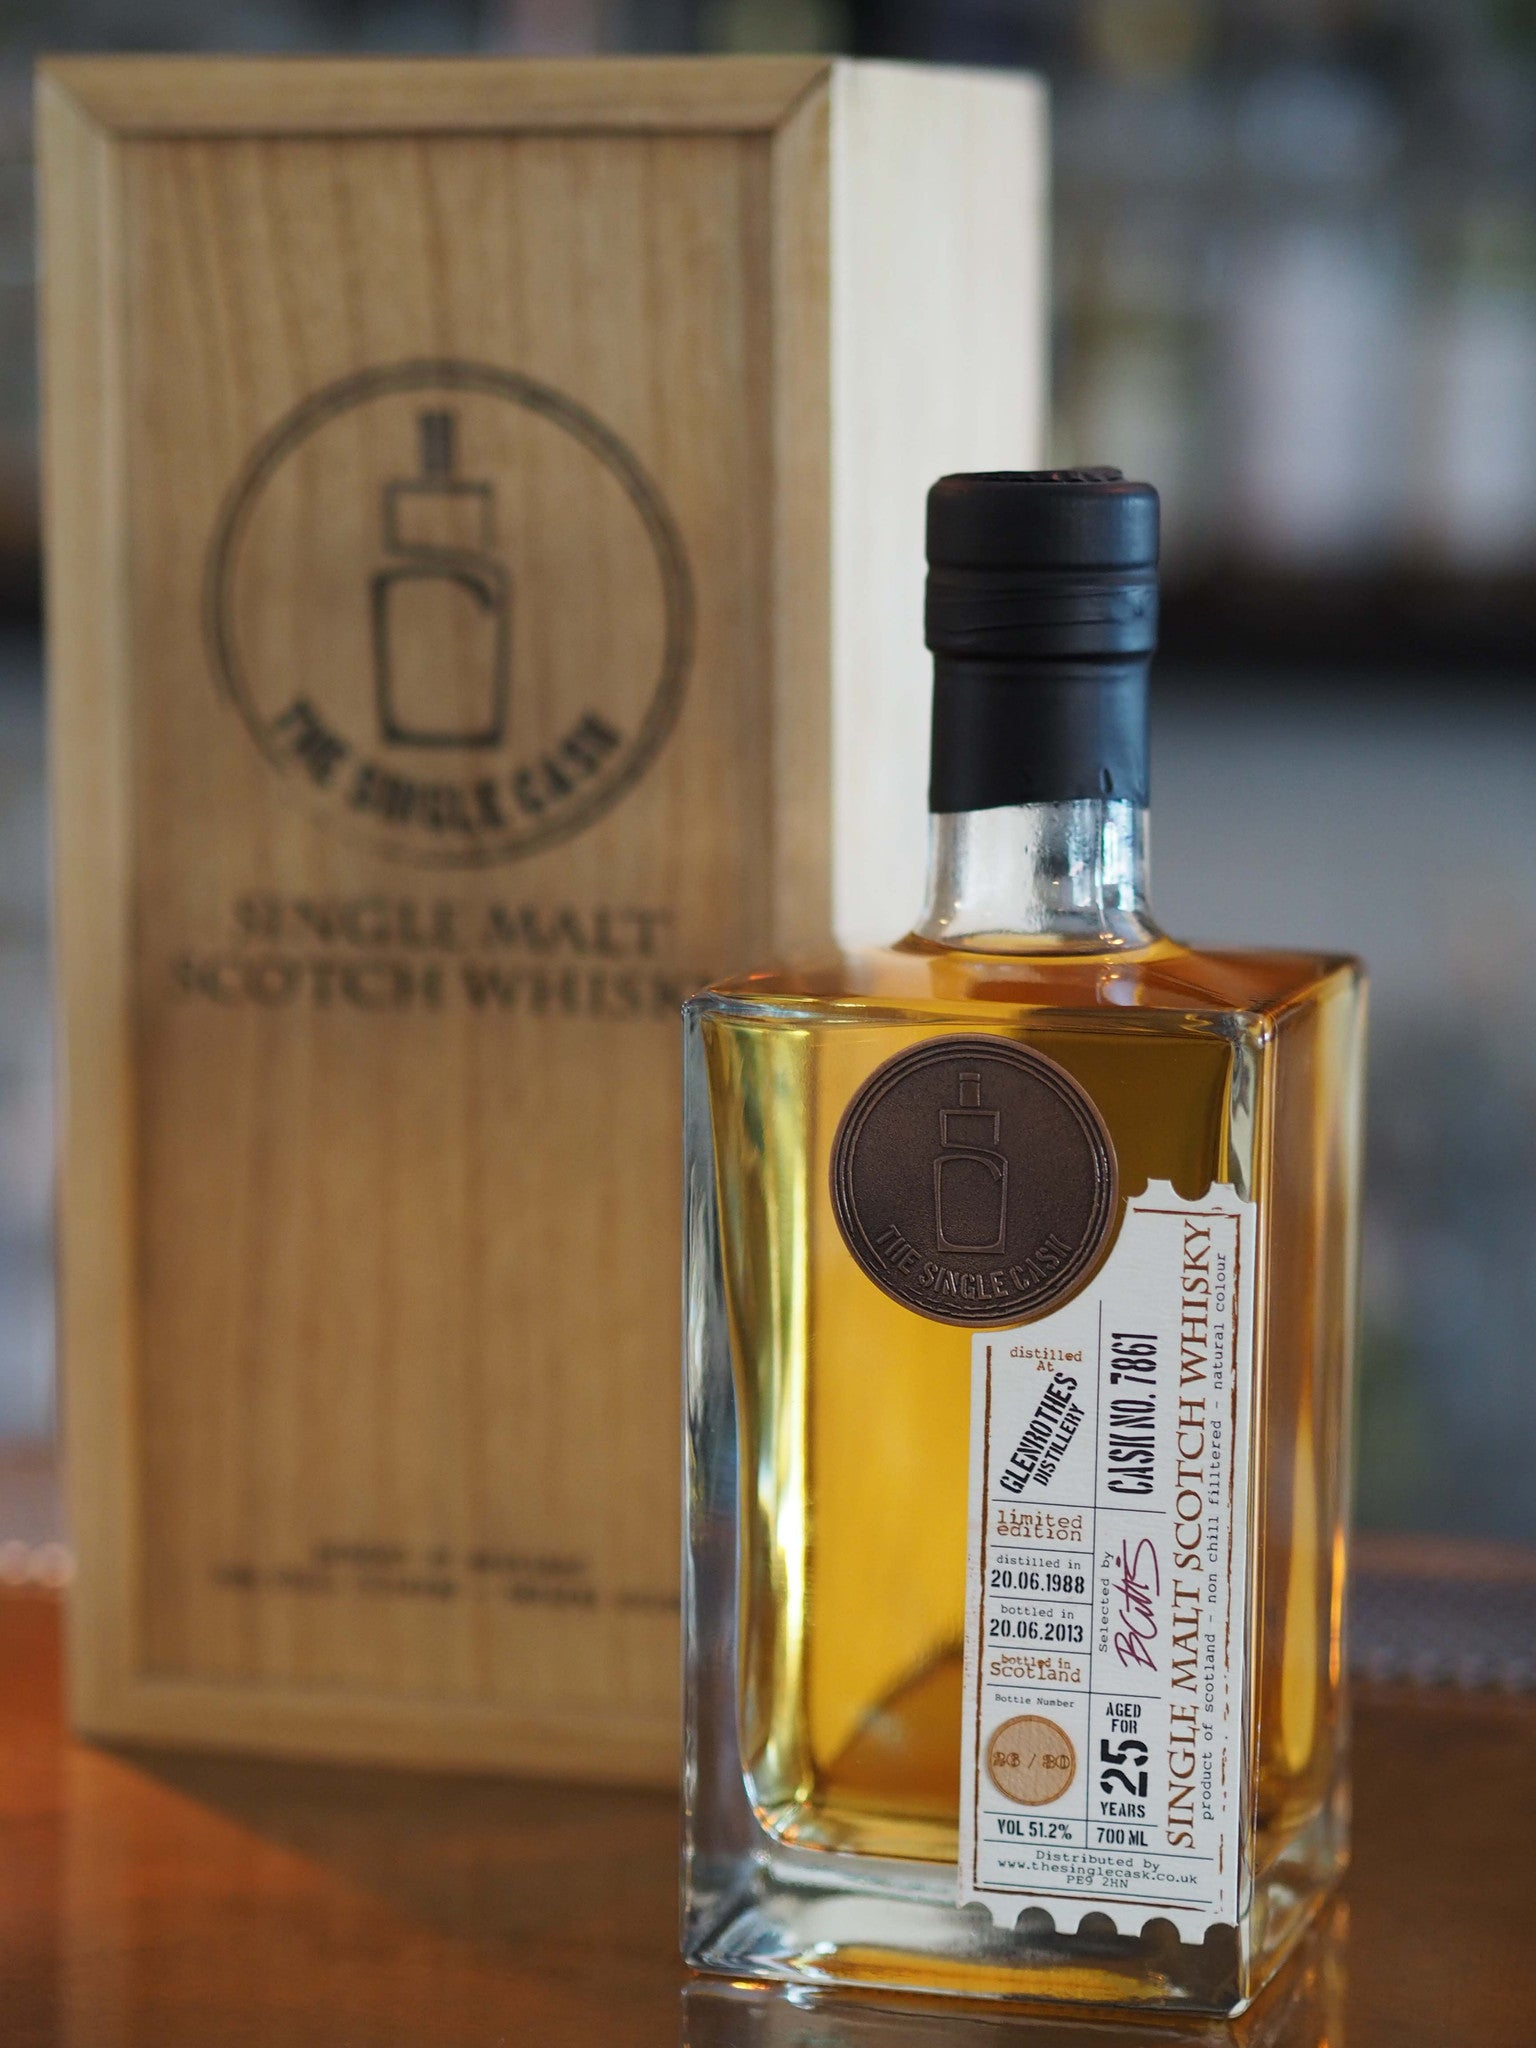 Whisky Review No.18 - The Single Cask Whisky Bar Singapore